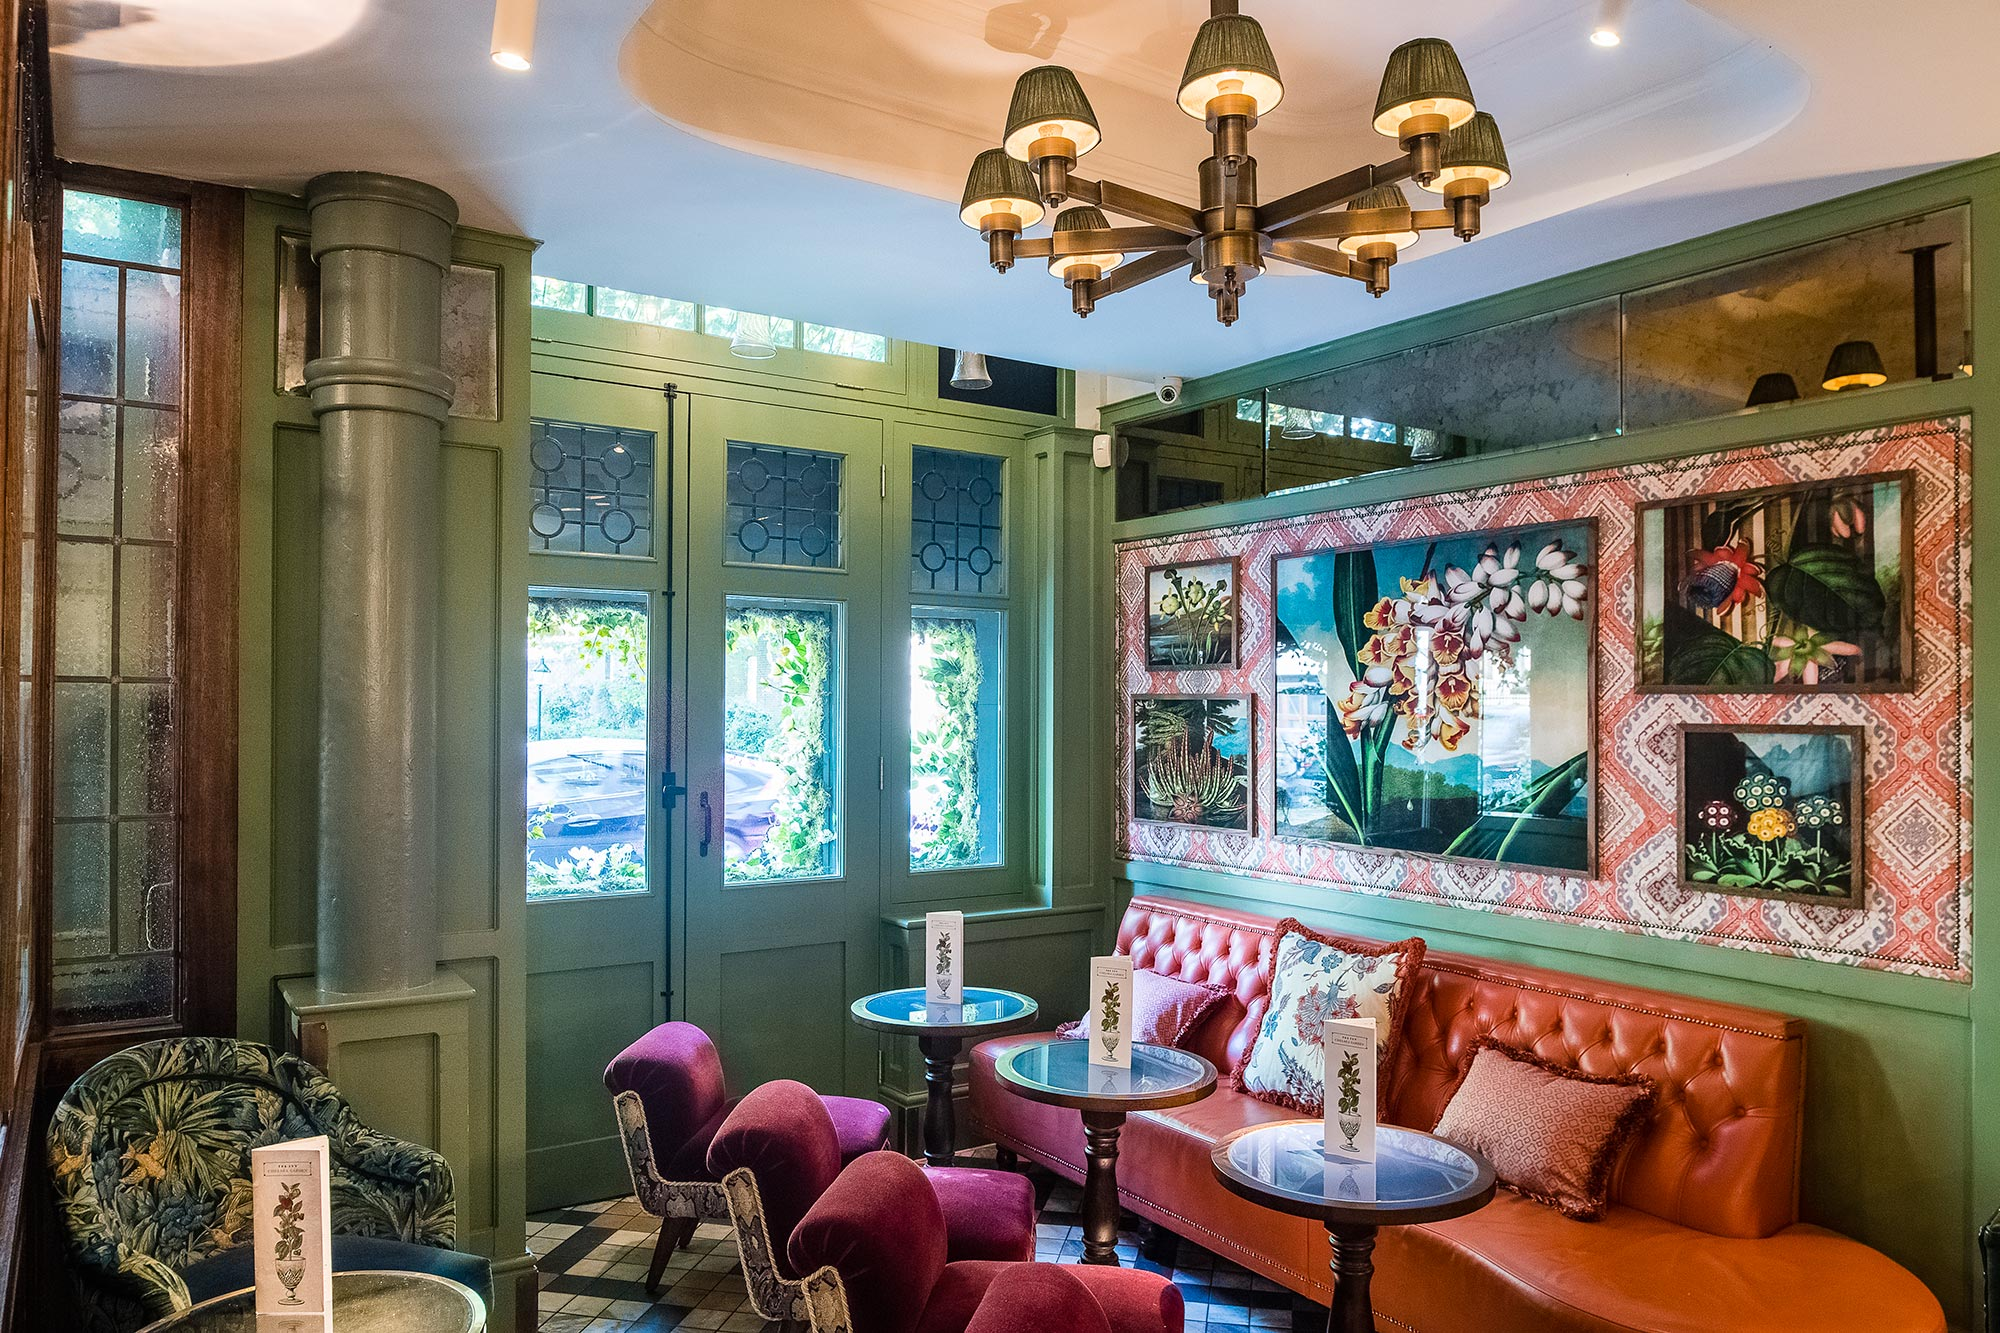 Where to eat in Chelsea, The Ivy Chelsea Garden - The Ivy Chelsea Garden